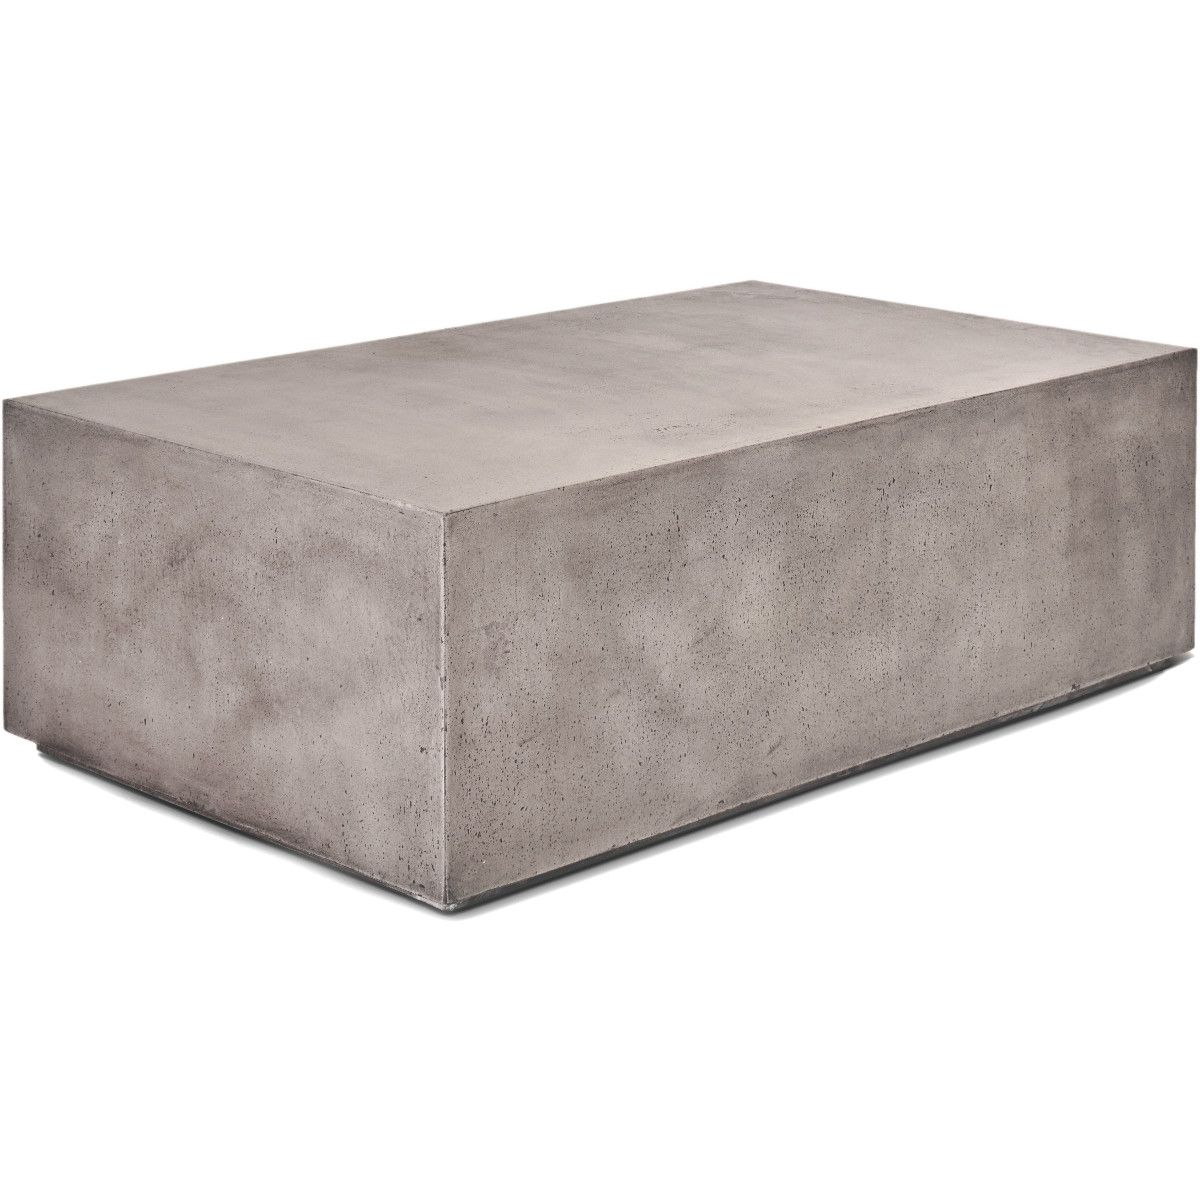 Picture of: Concrete Rectangular Block Coffee Table Dark Gray Or Ivory White Minimalist Modern The Design Tap